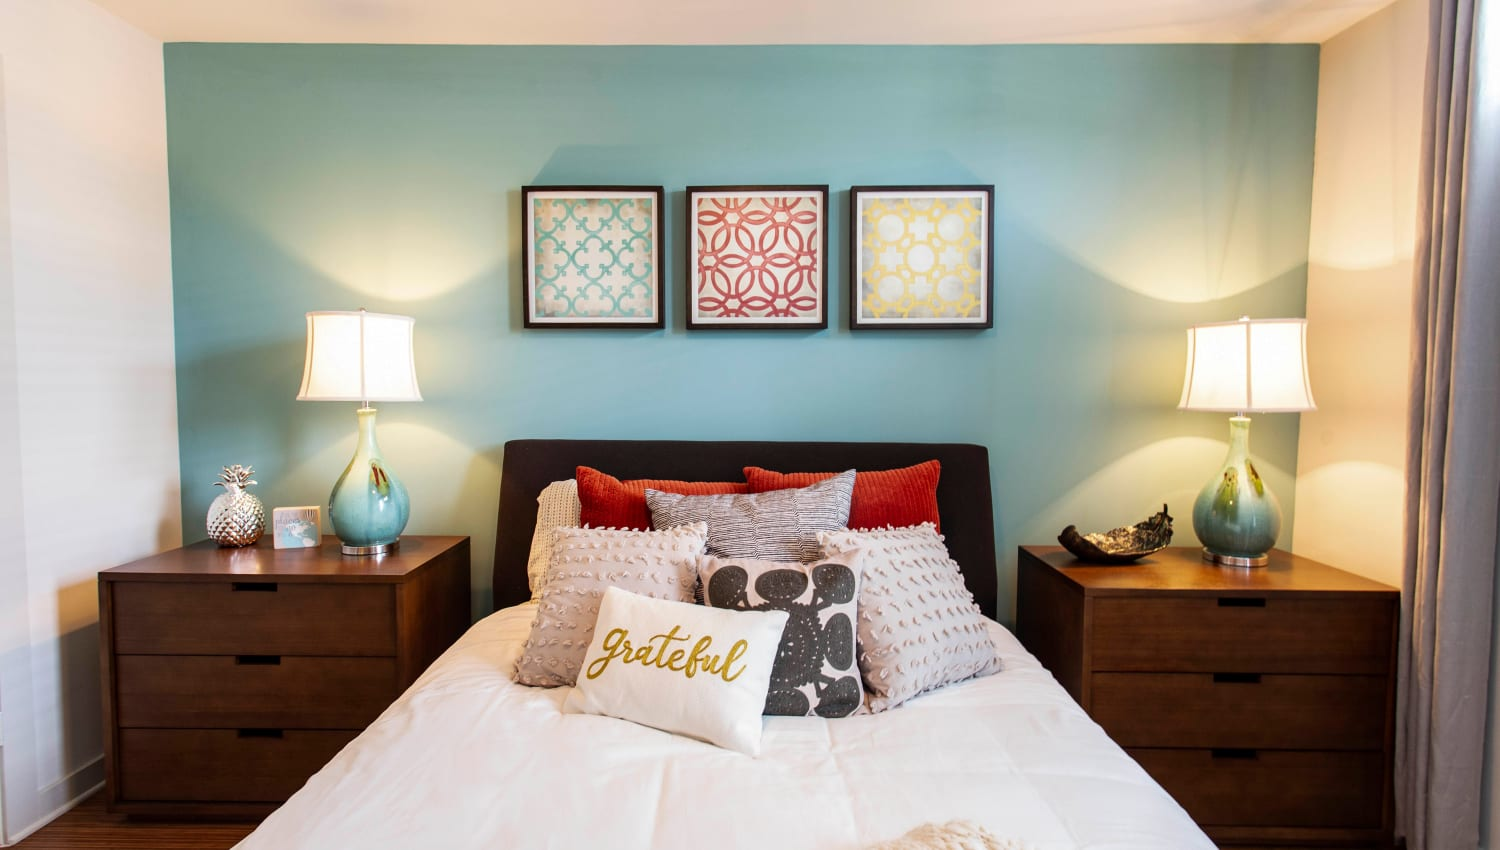 Well-furnished master bedroom in a model apartment at Olympus Midtown in Nashville, Tennessee